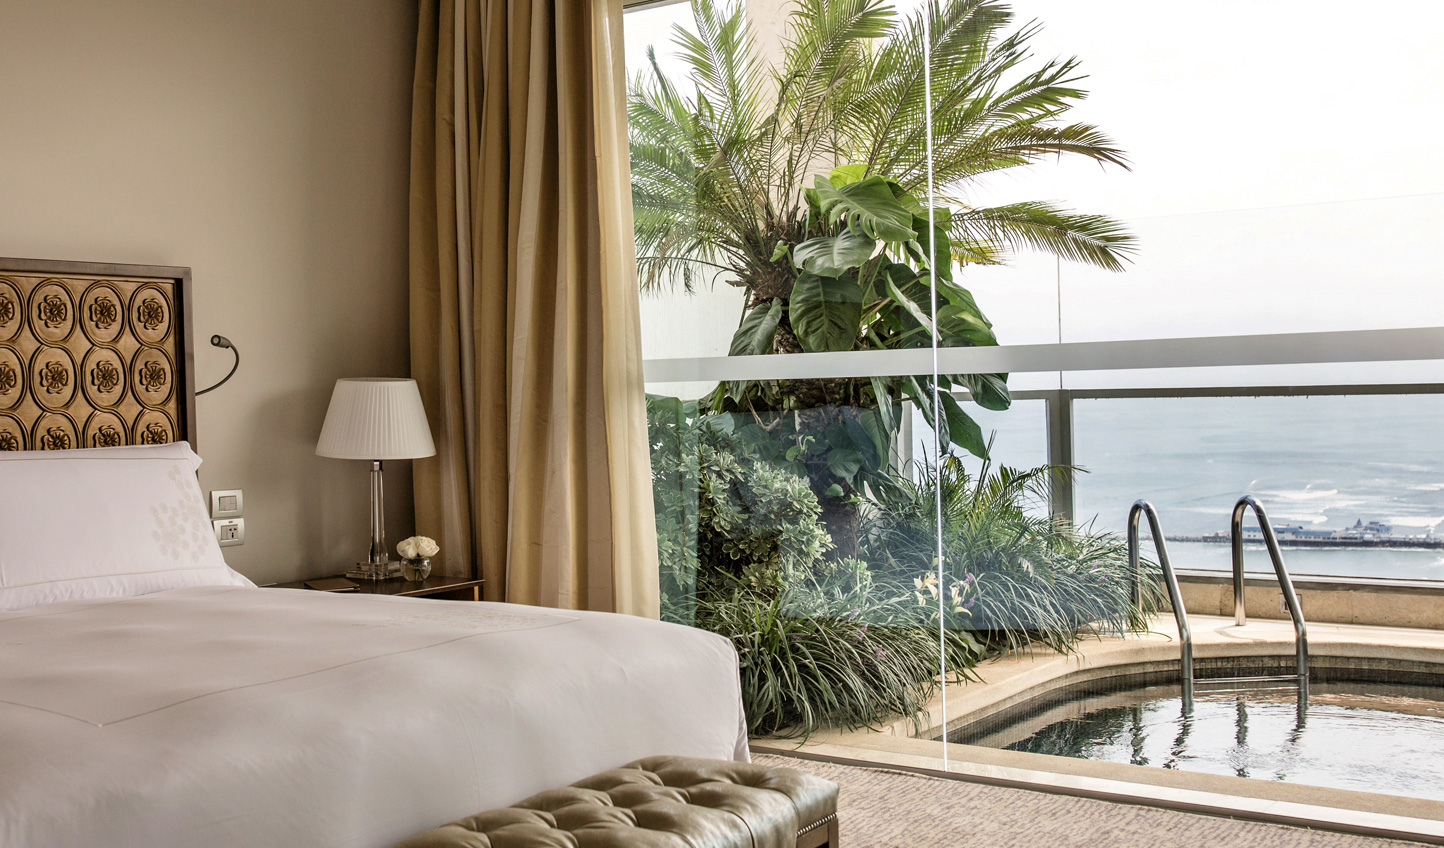 Soak up the best views in the city from the Presidential Pool Suites